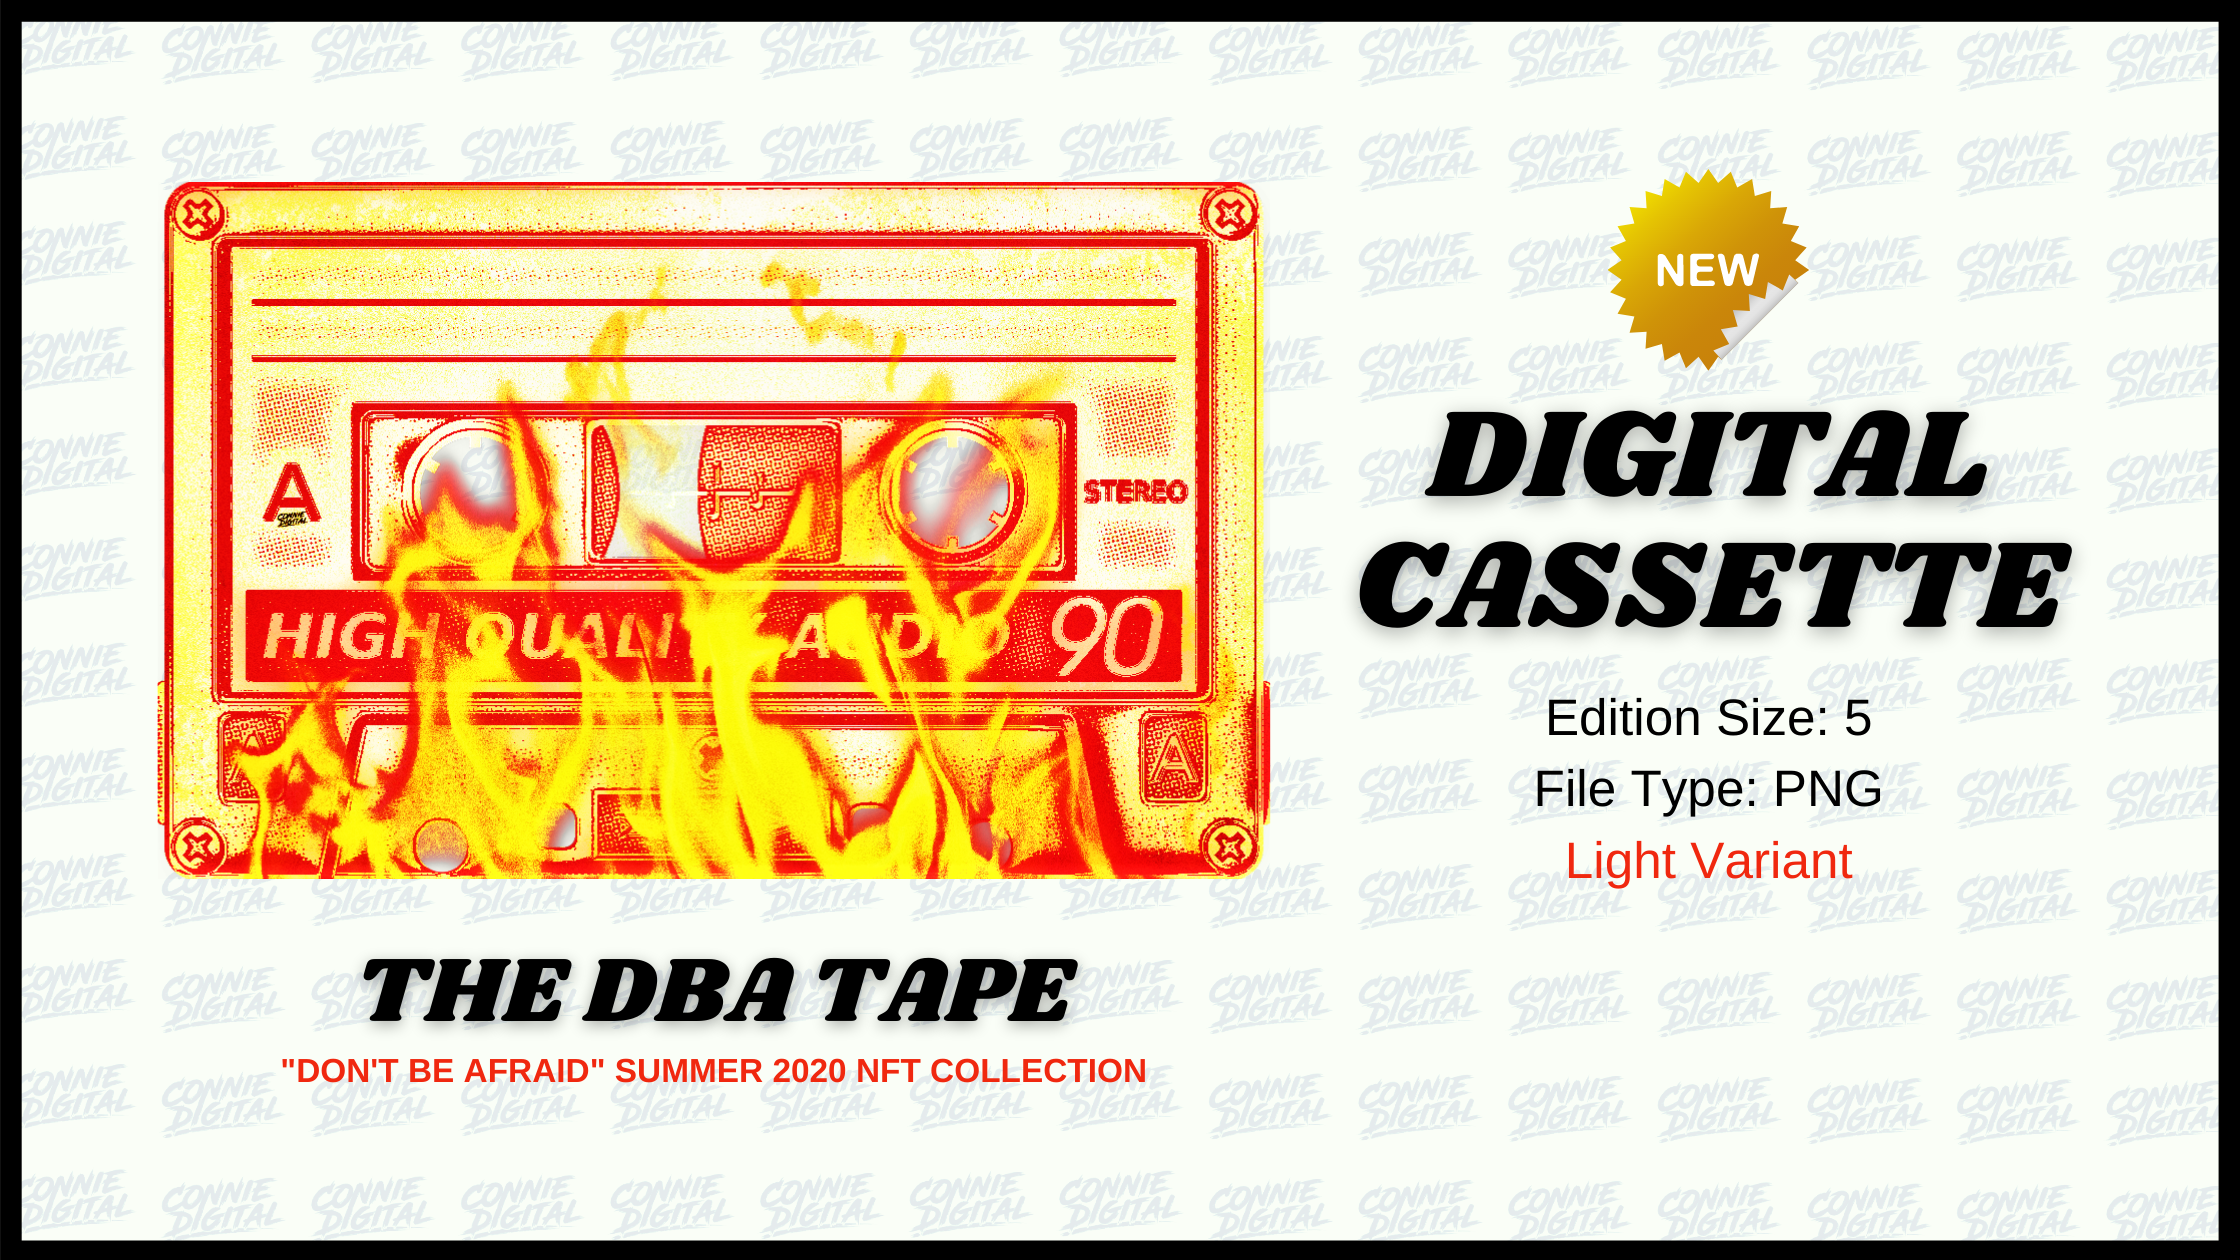 DIGITAL Collectibles The DBA Tape Connie Digital